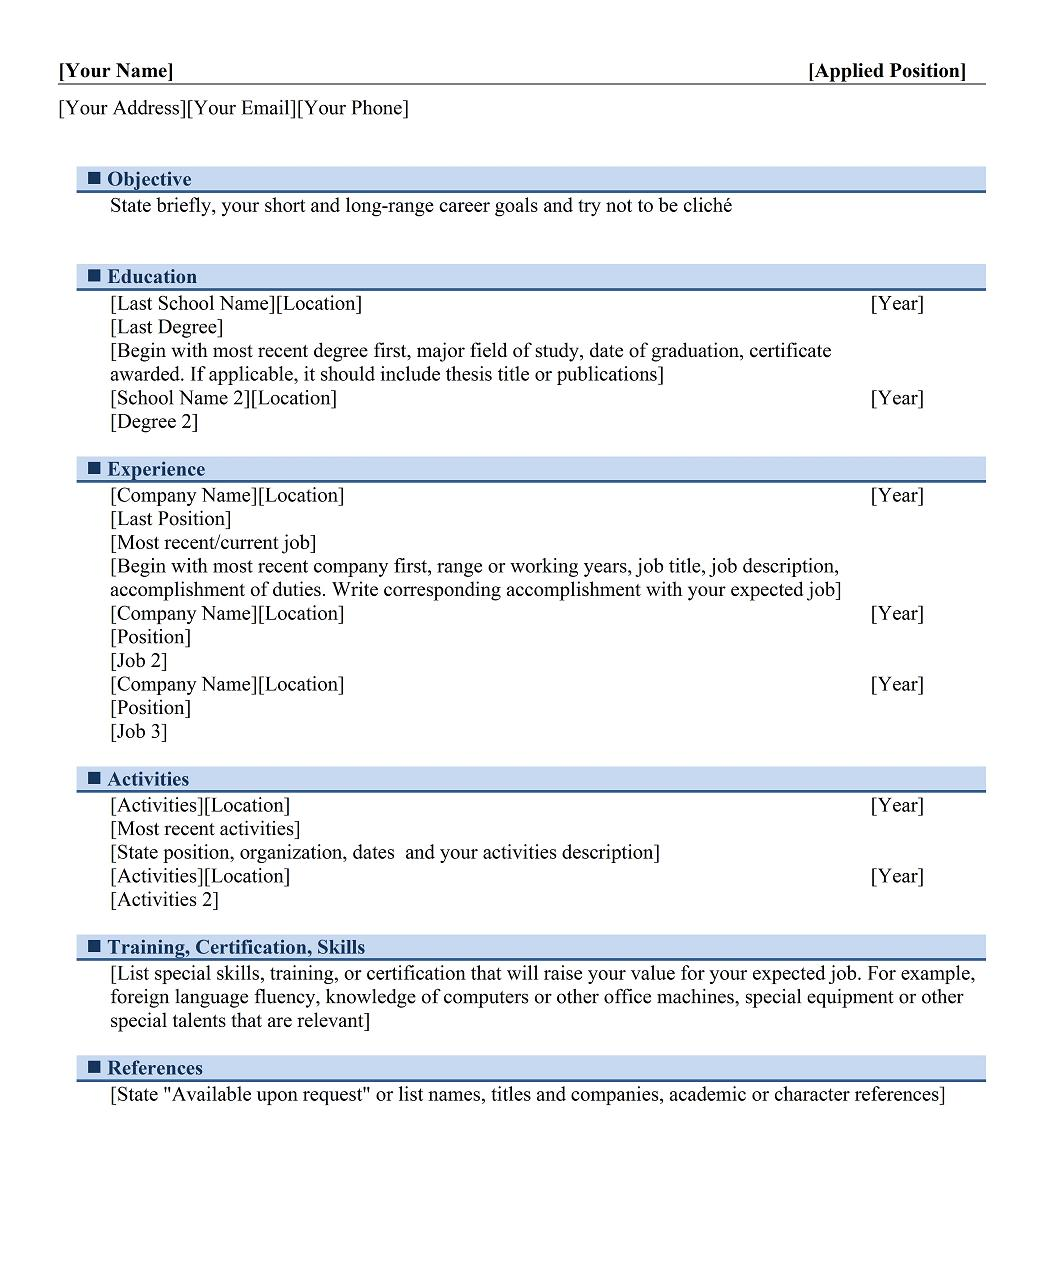 5 best resume examples, how to write a free chronological resume ...